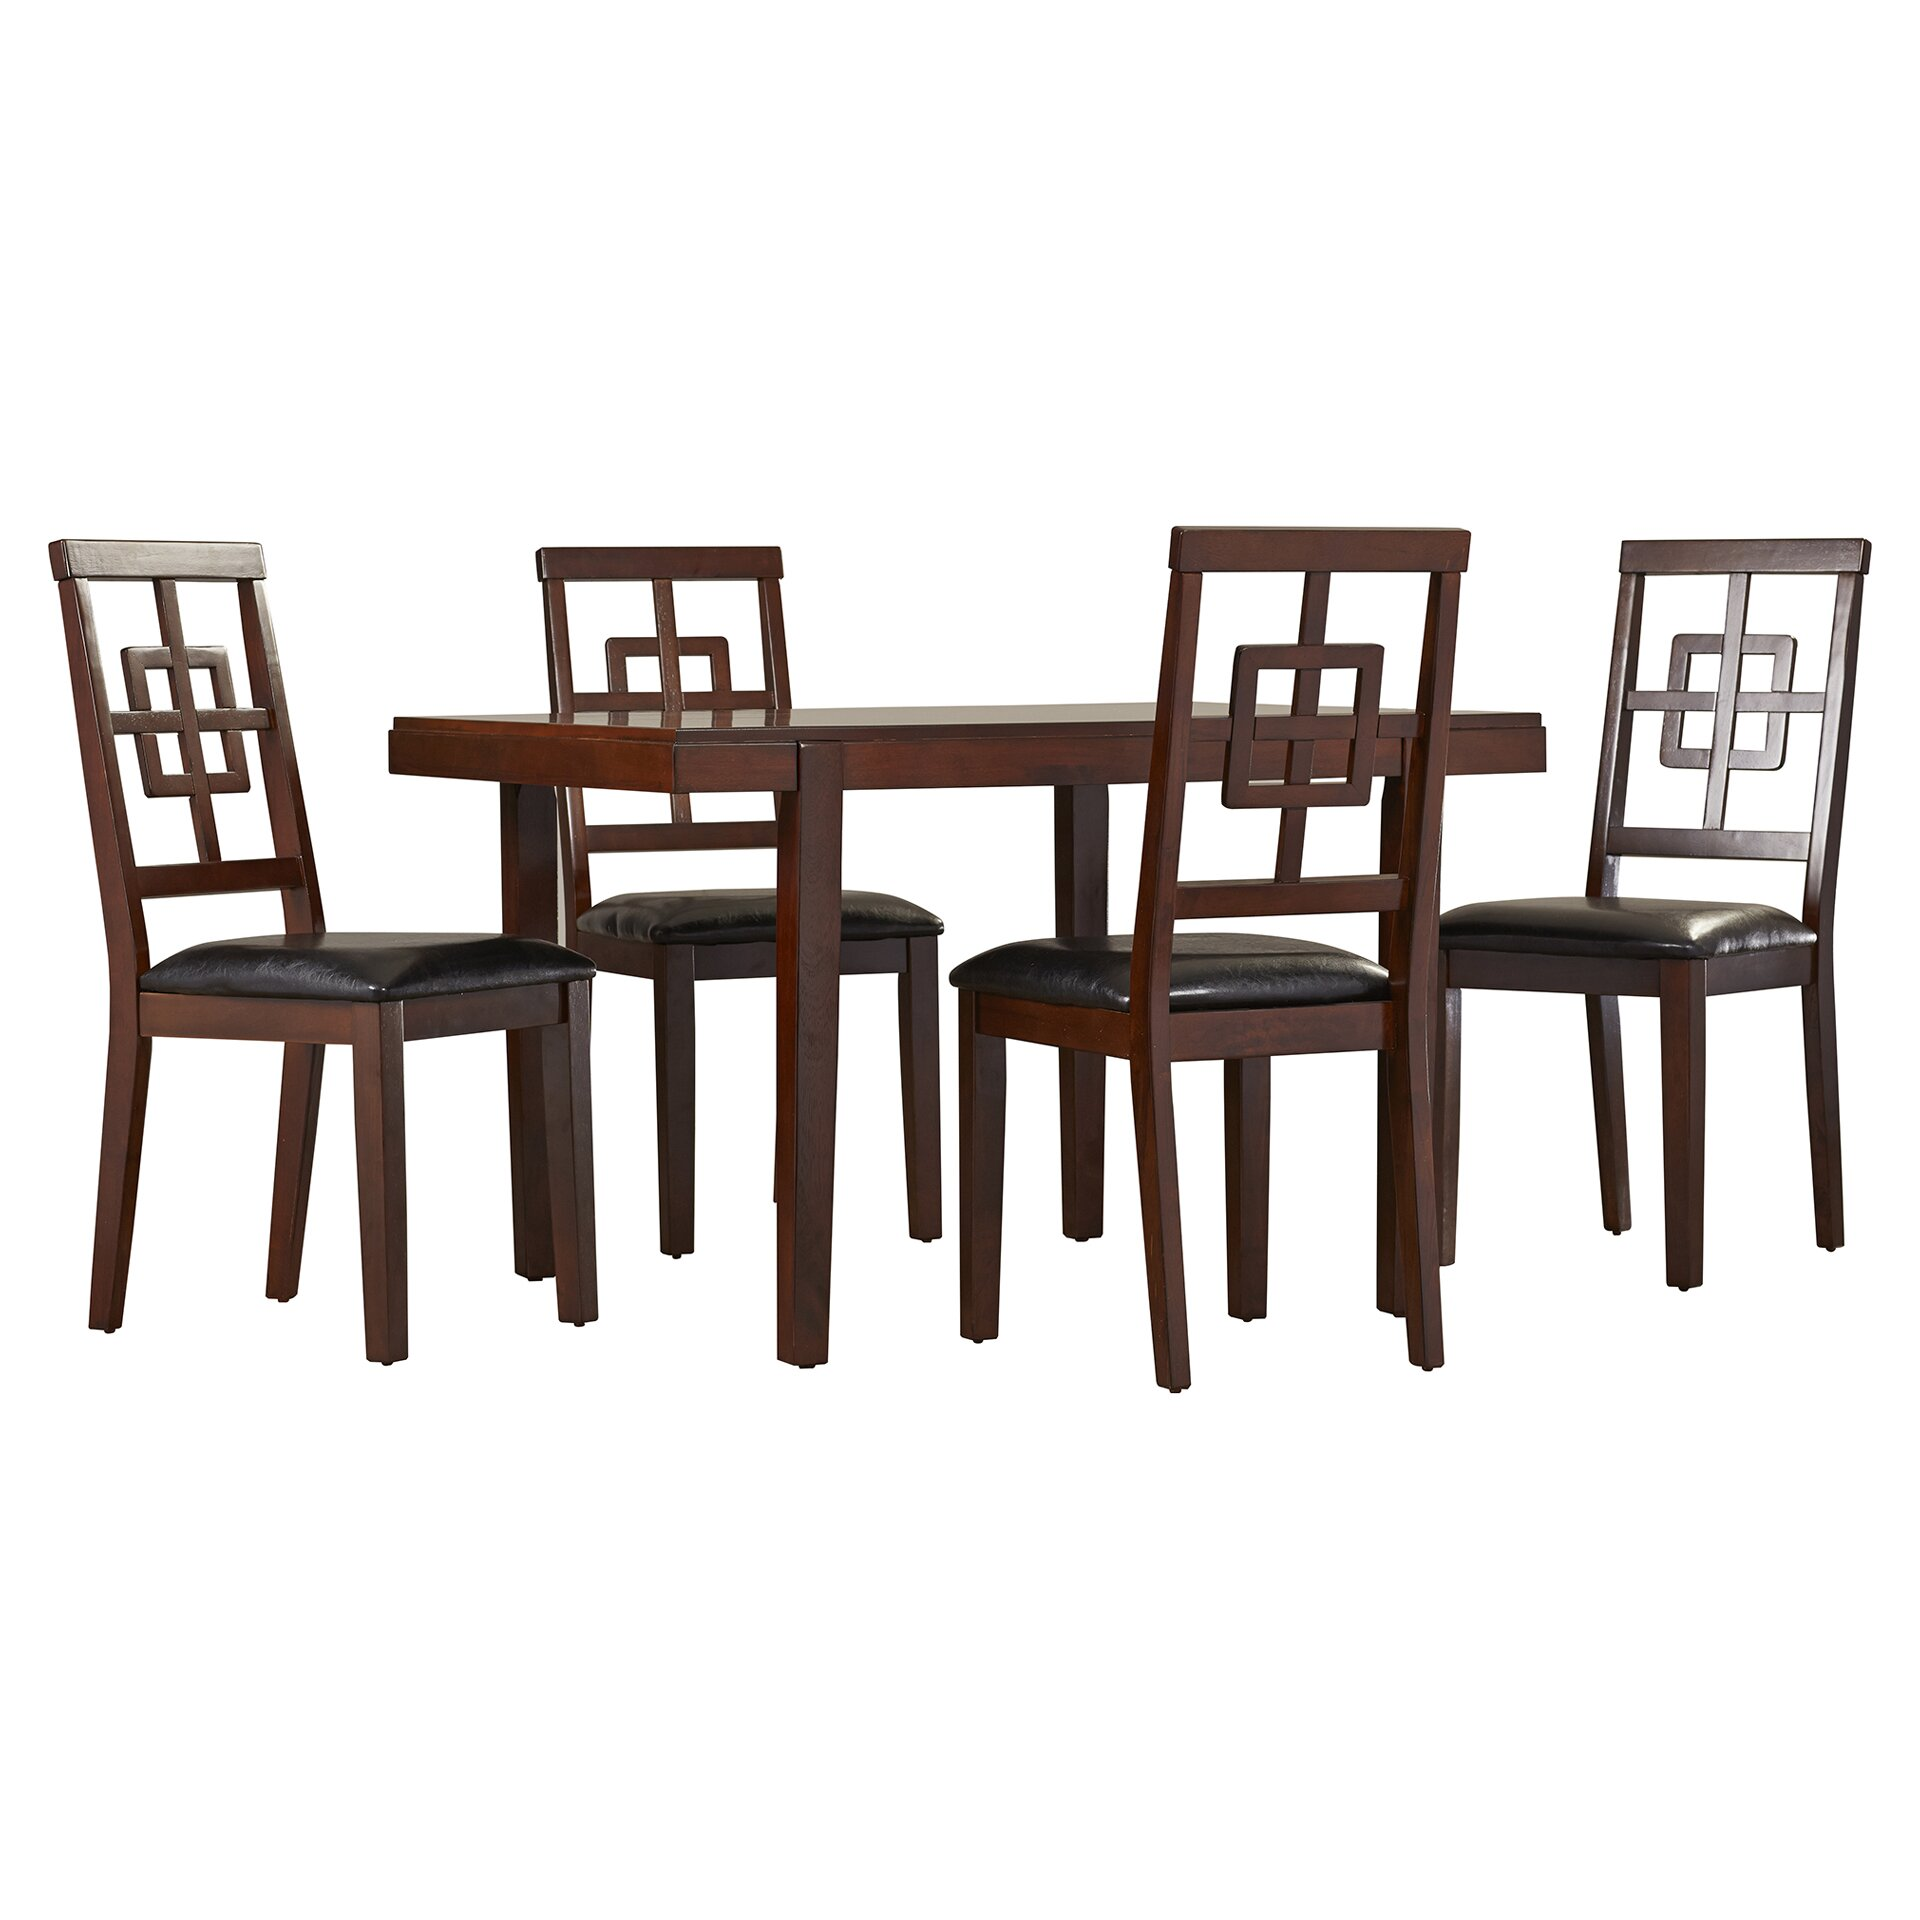 Dining Furniture 5 Piece Kitchen & Dining Room Sets Darby Home Co. Full resolution  portrait, nominally Width 1920 Height 1920 pixels, portrait with #3B2821.